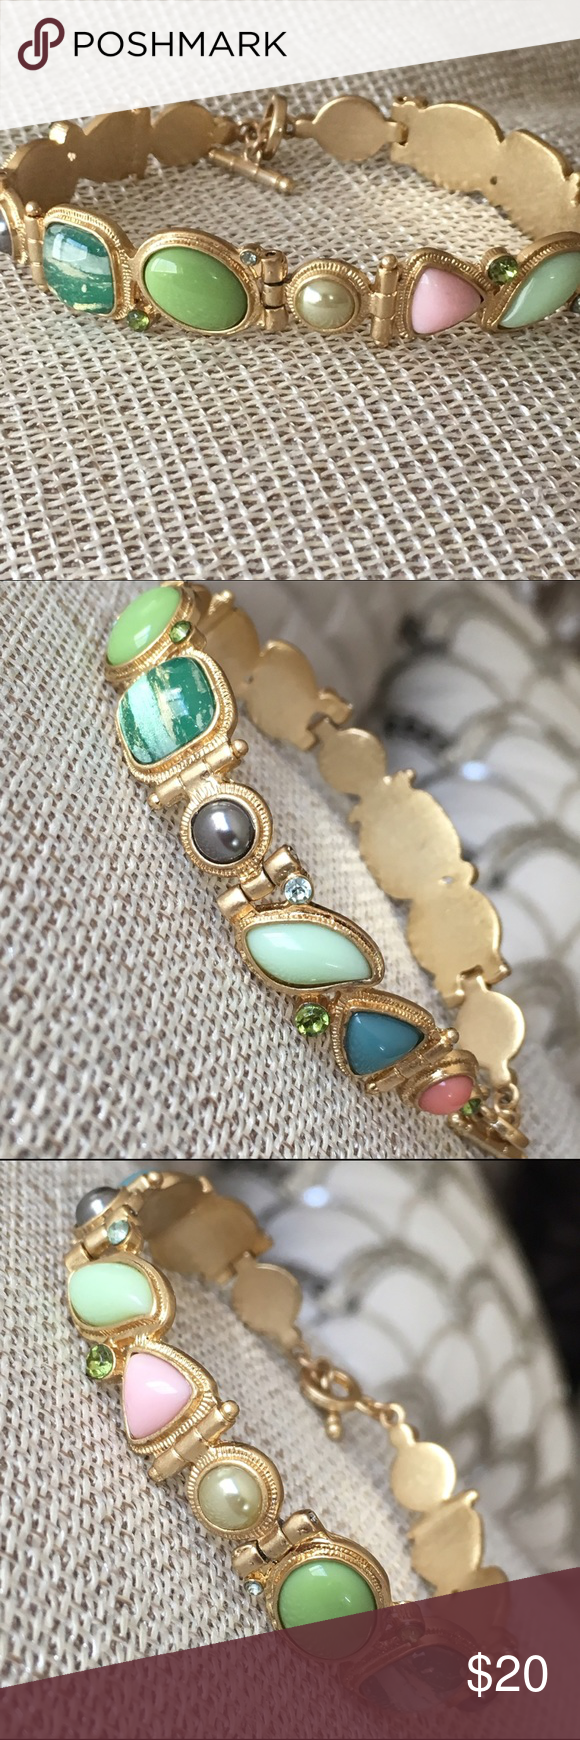 product multicolor lyst kind a gallery in of one colored jewelry gems rio bracelet stone this schepps normal seaman multi